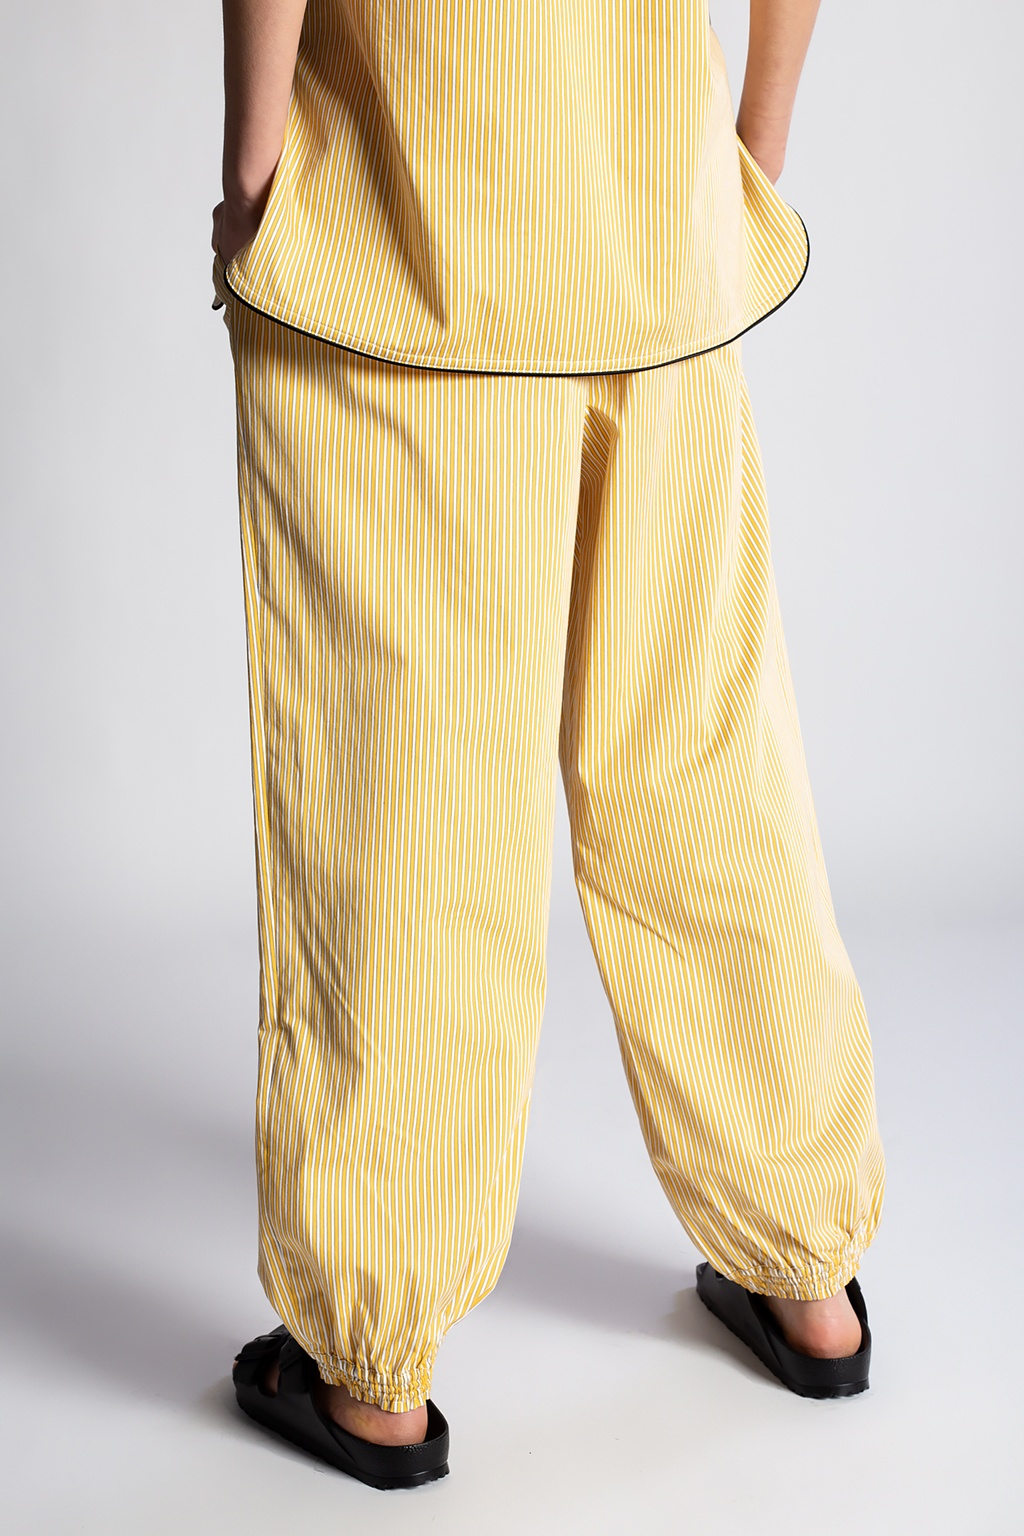 Tory Burch Striped trousers